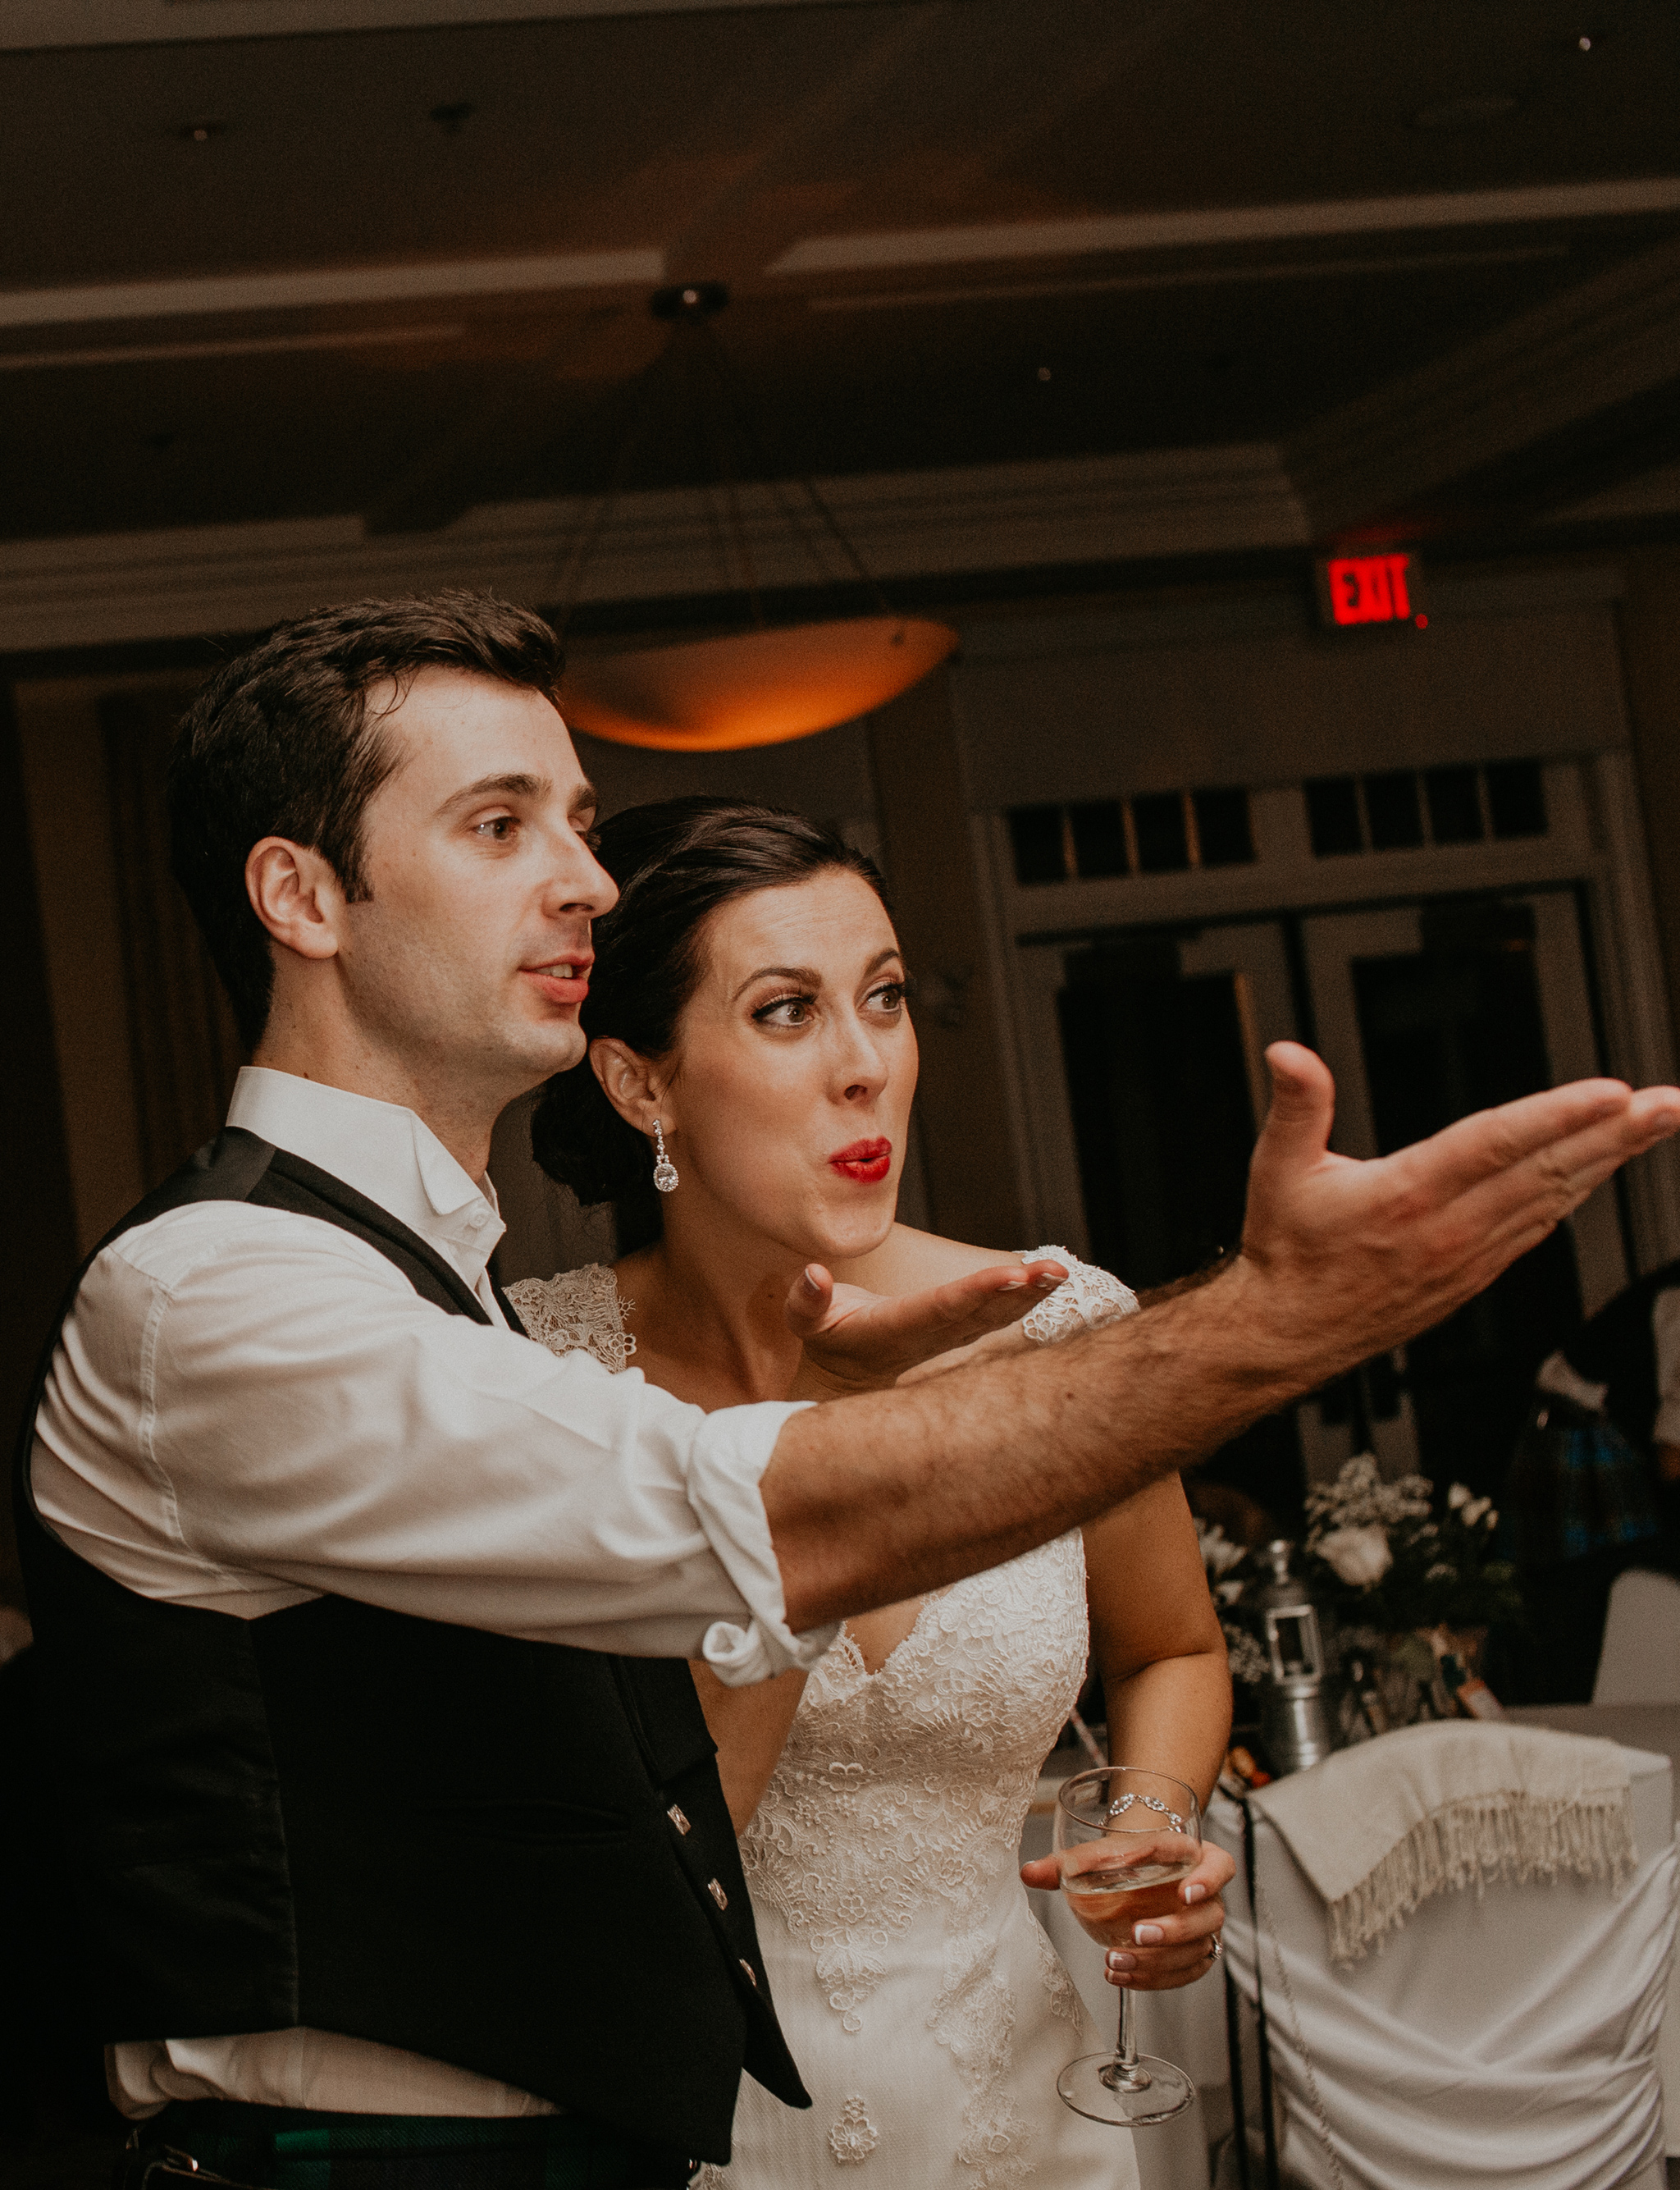 Candid moment of bride and groom blowing kiss at wedding reception